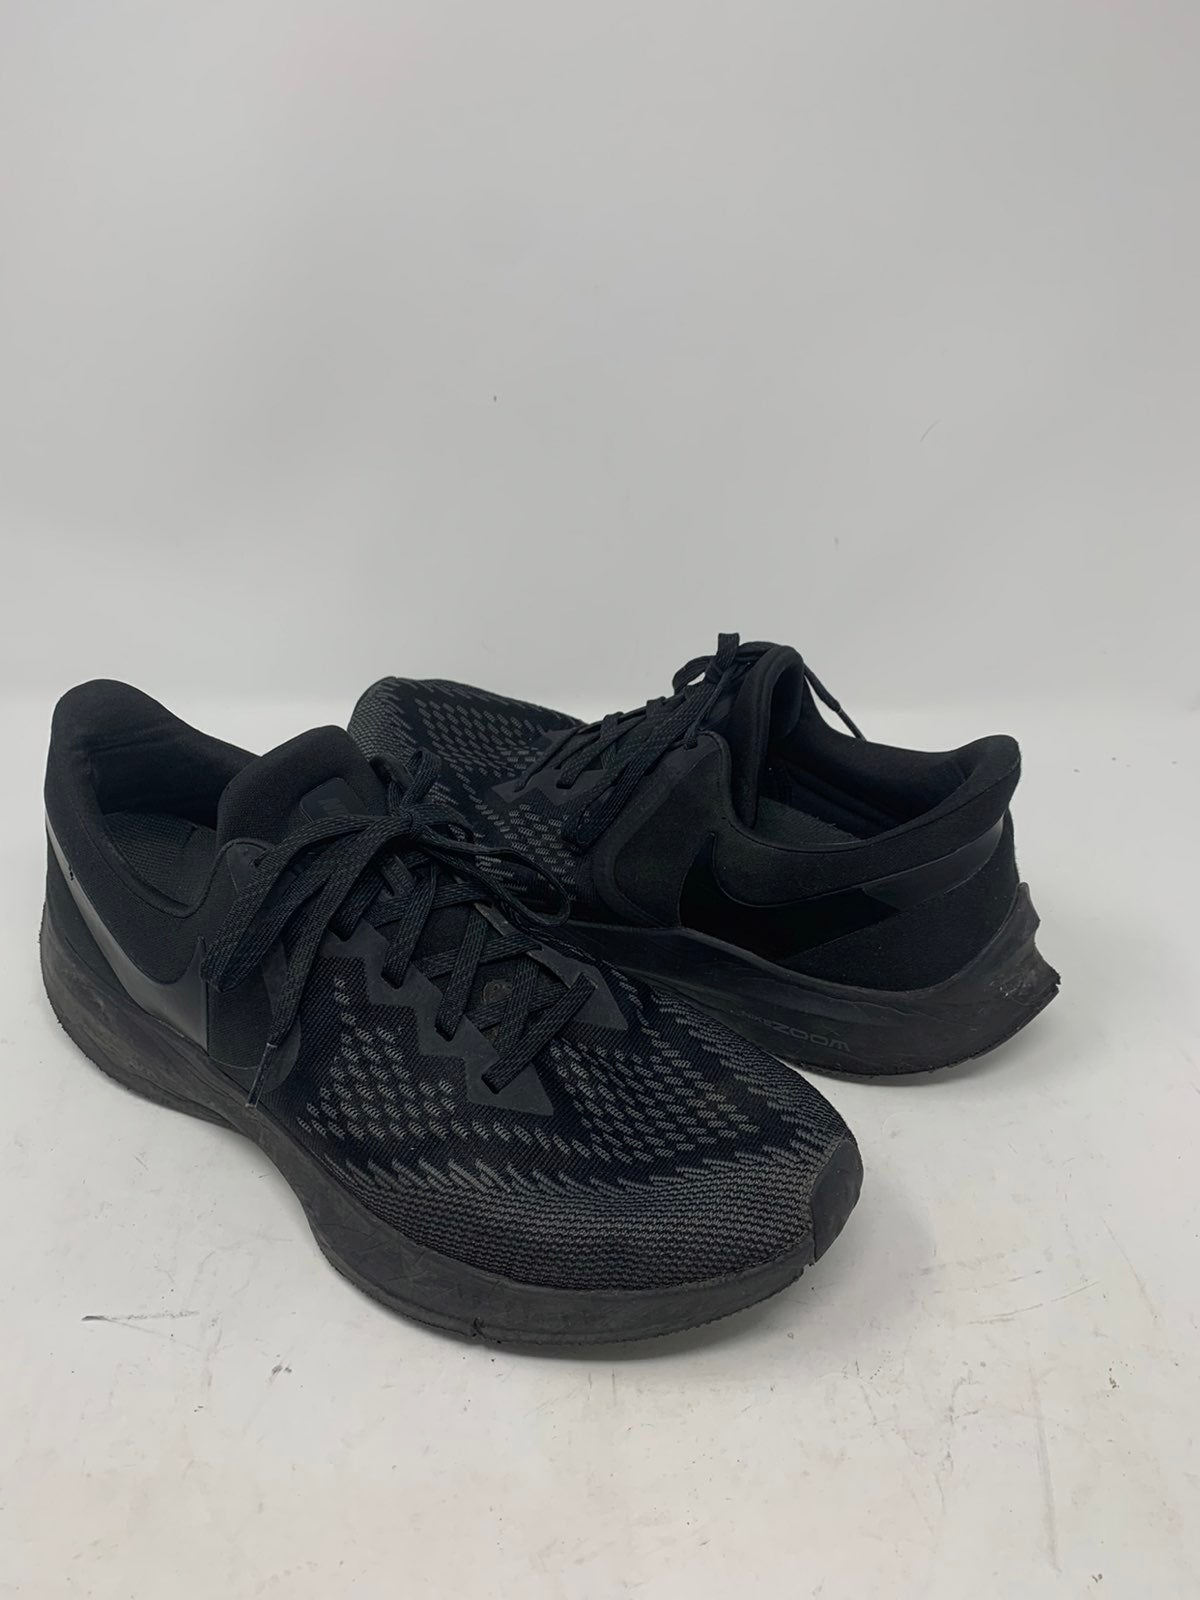 Nike Mens Zoom Winflo Running Shoes 11.5